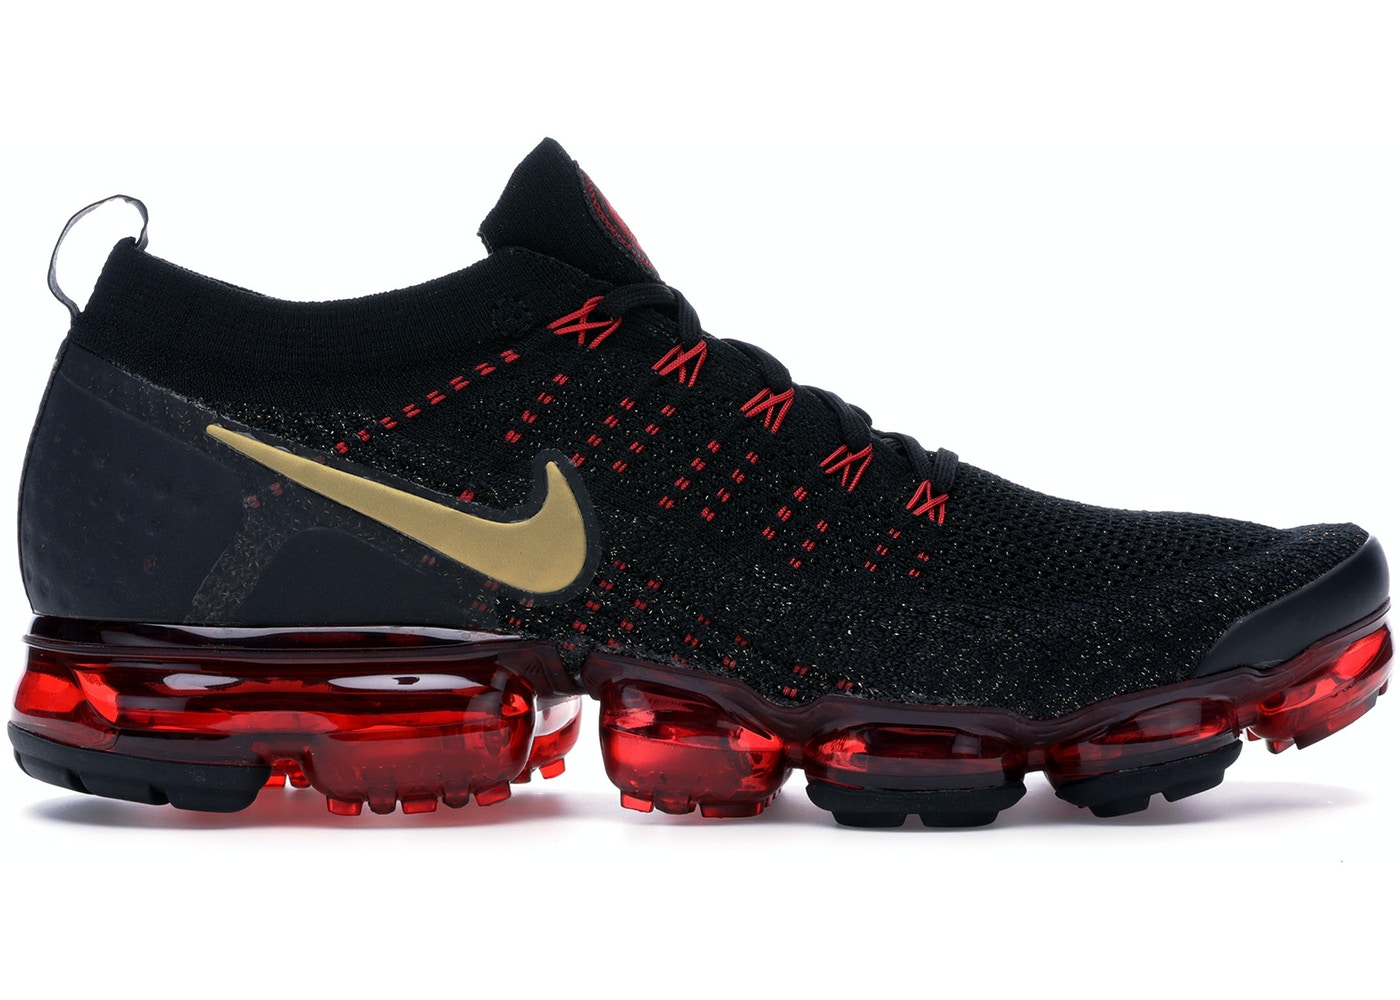 97a4fa2409 Buy Nike Air Max VaporMax Shoes & Deadstock Sneakers